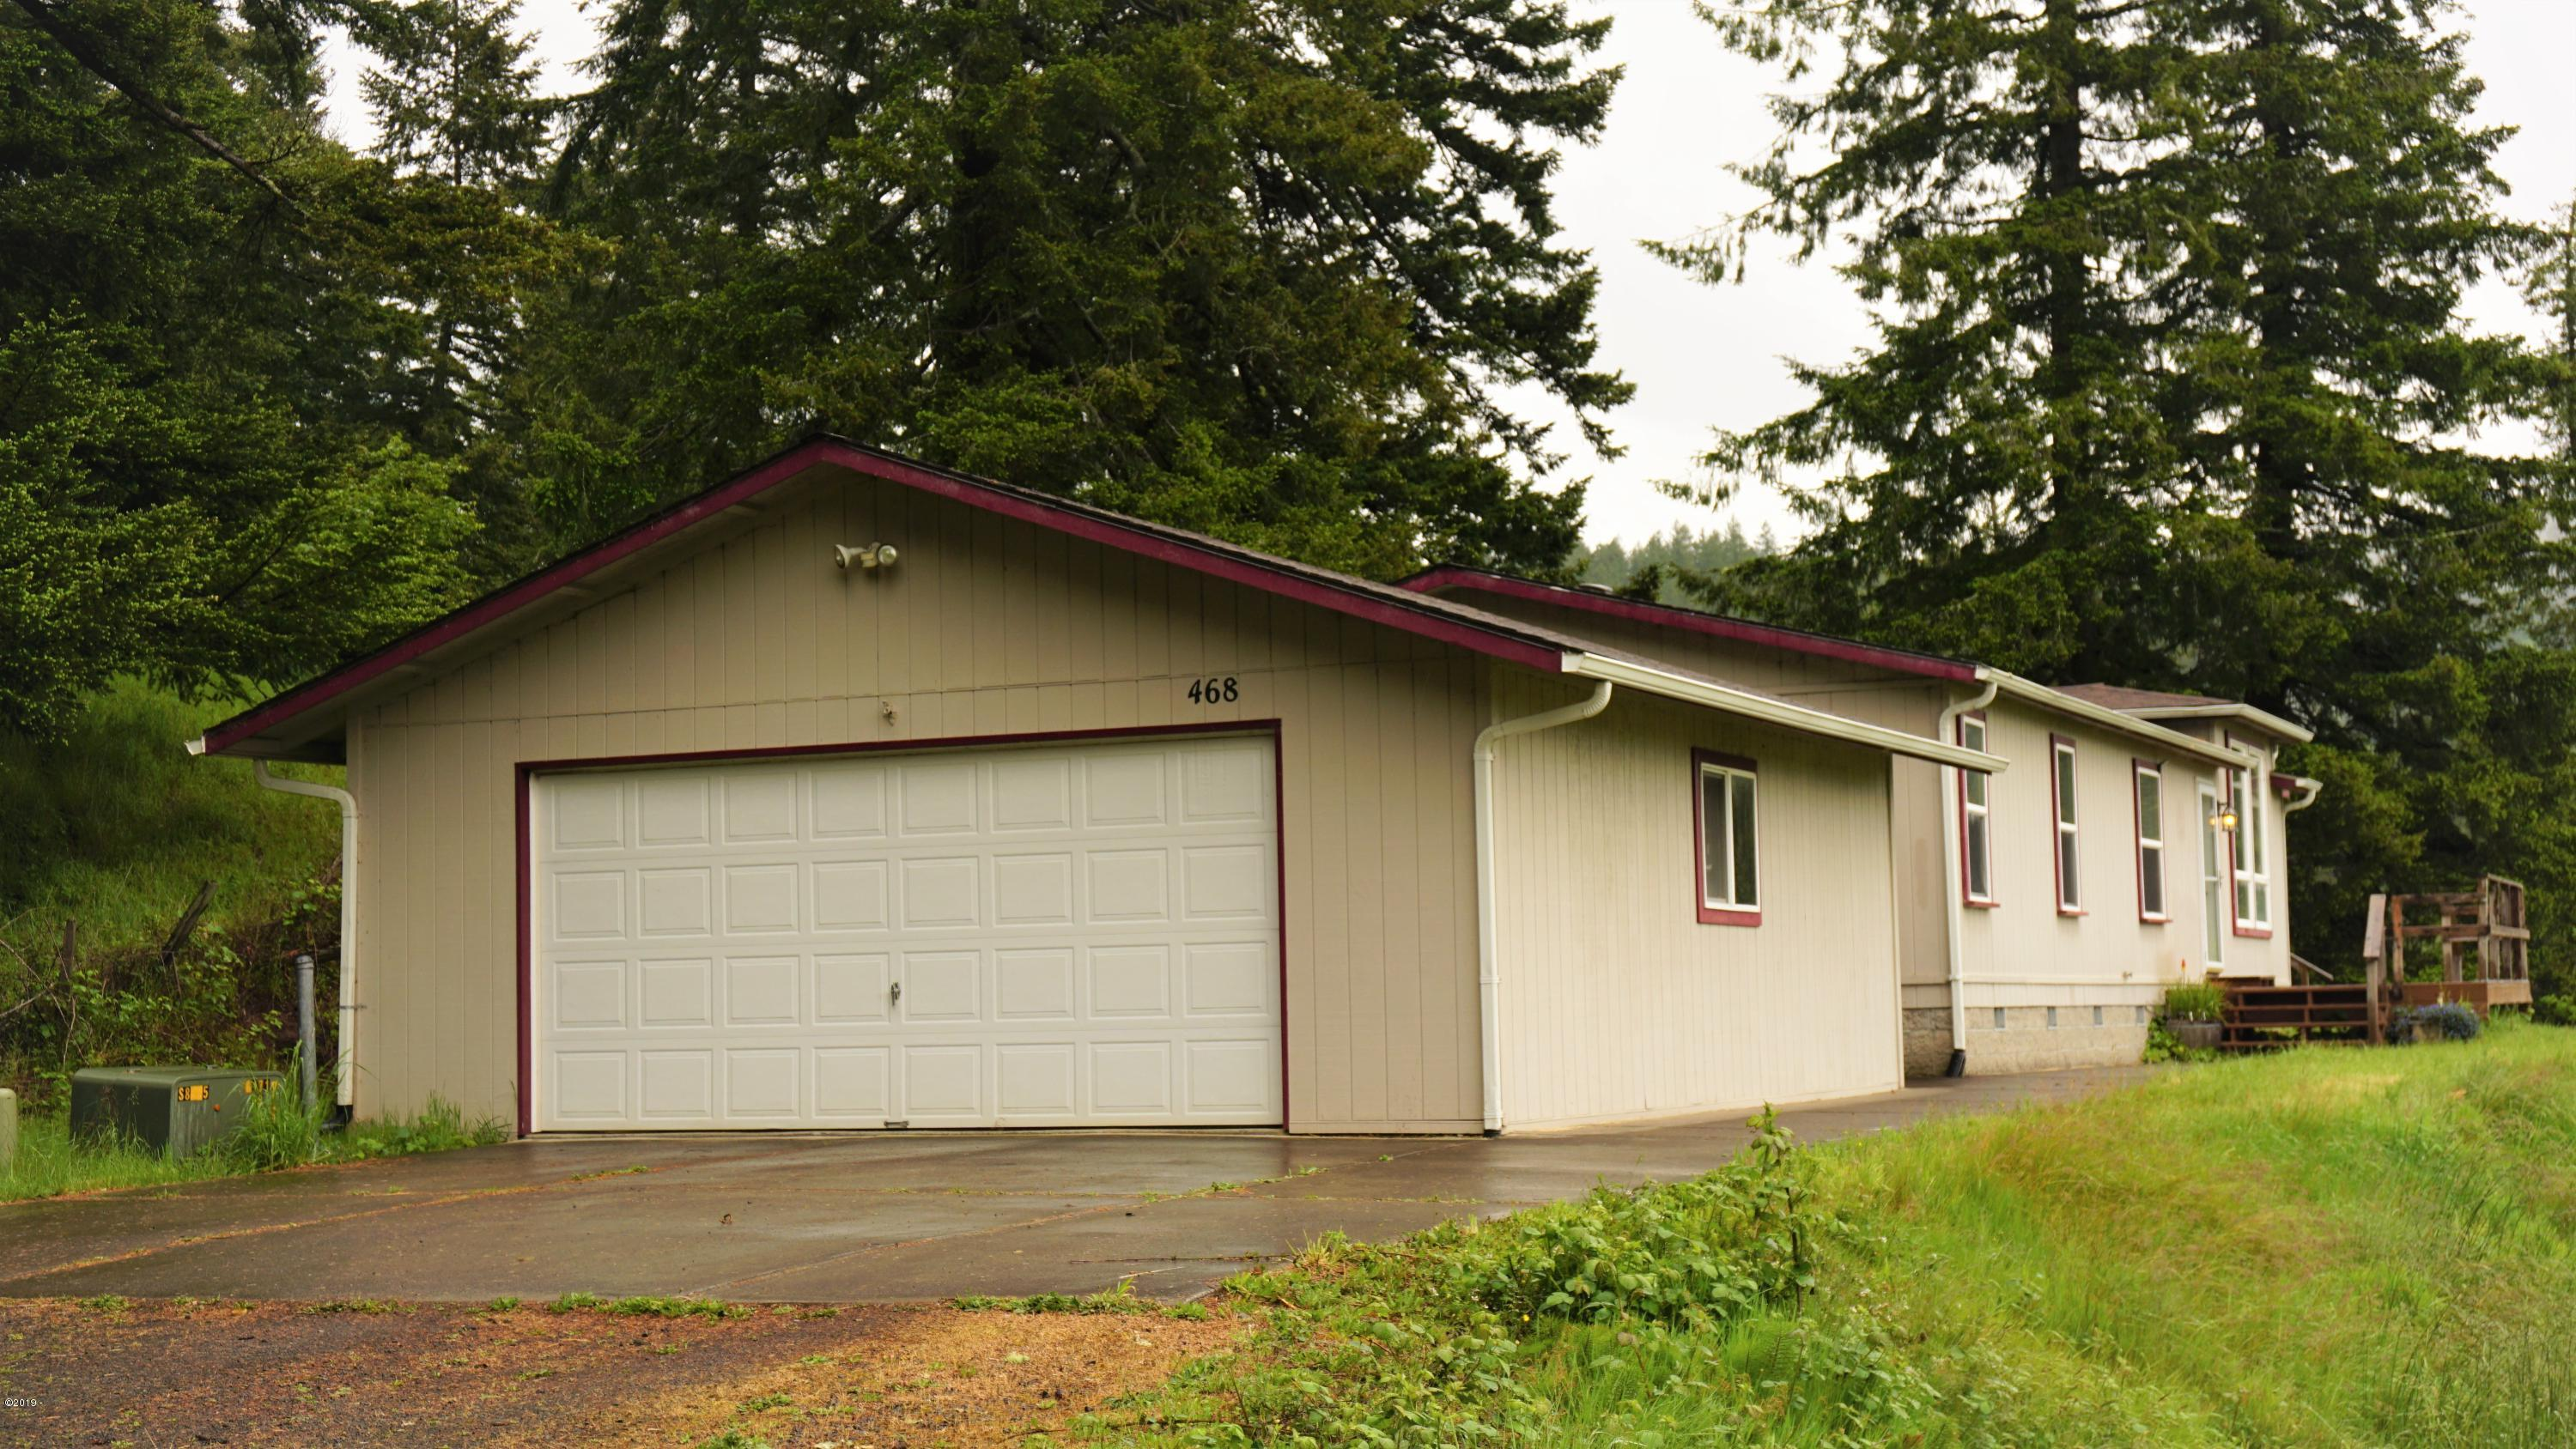 468 NE East Slope Rd, Toledo, OR 97391